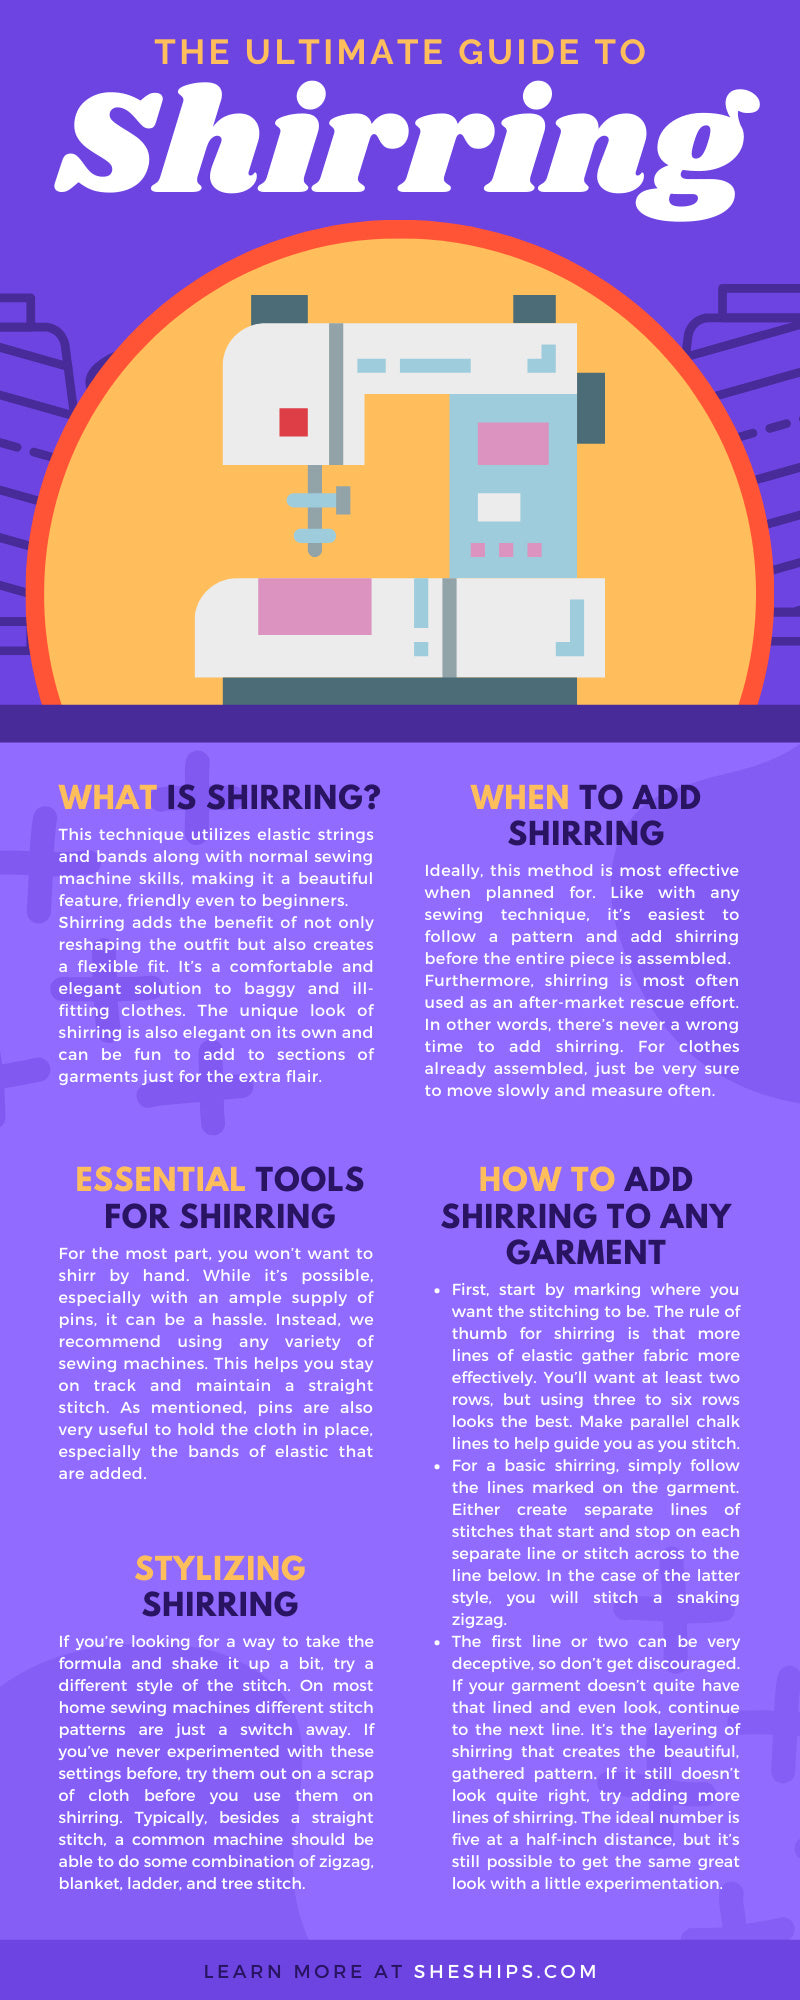 The Ultimate Guide To Shirring